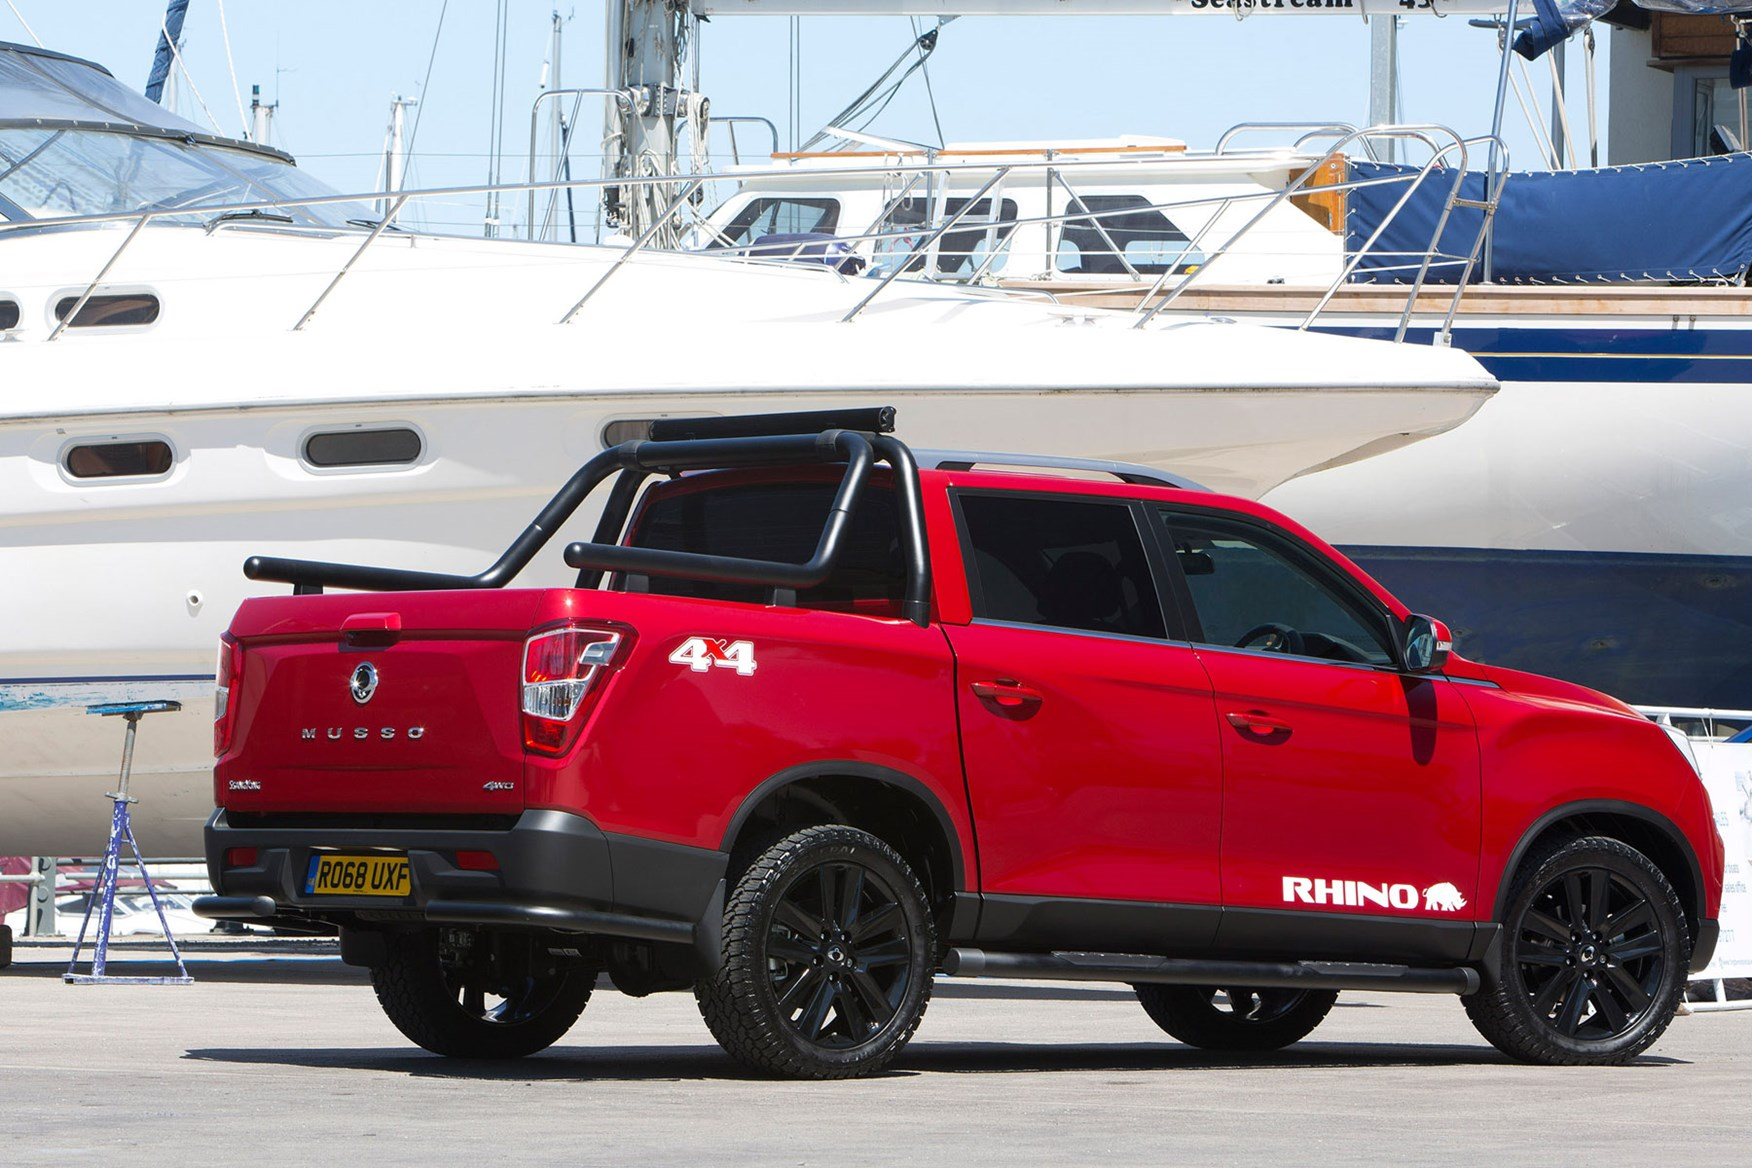 SsangYong Musso (2018-on) review, Rhino, rear view, red